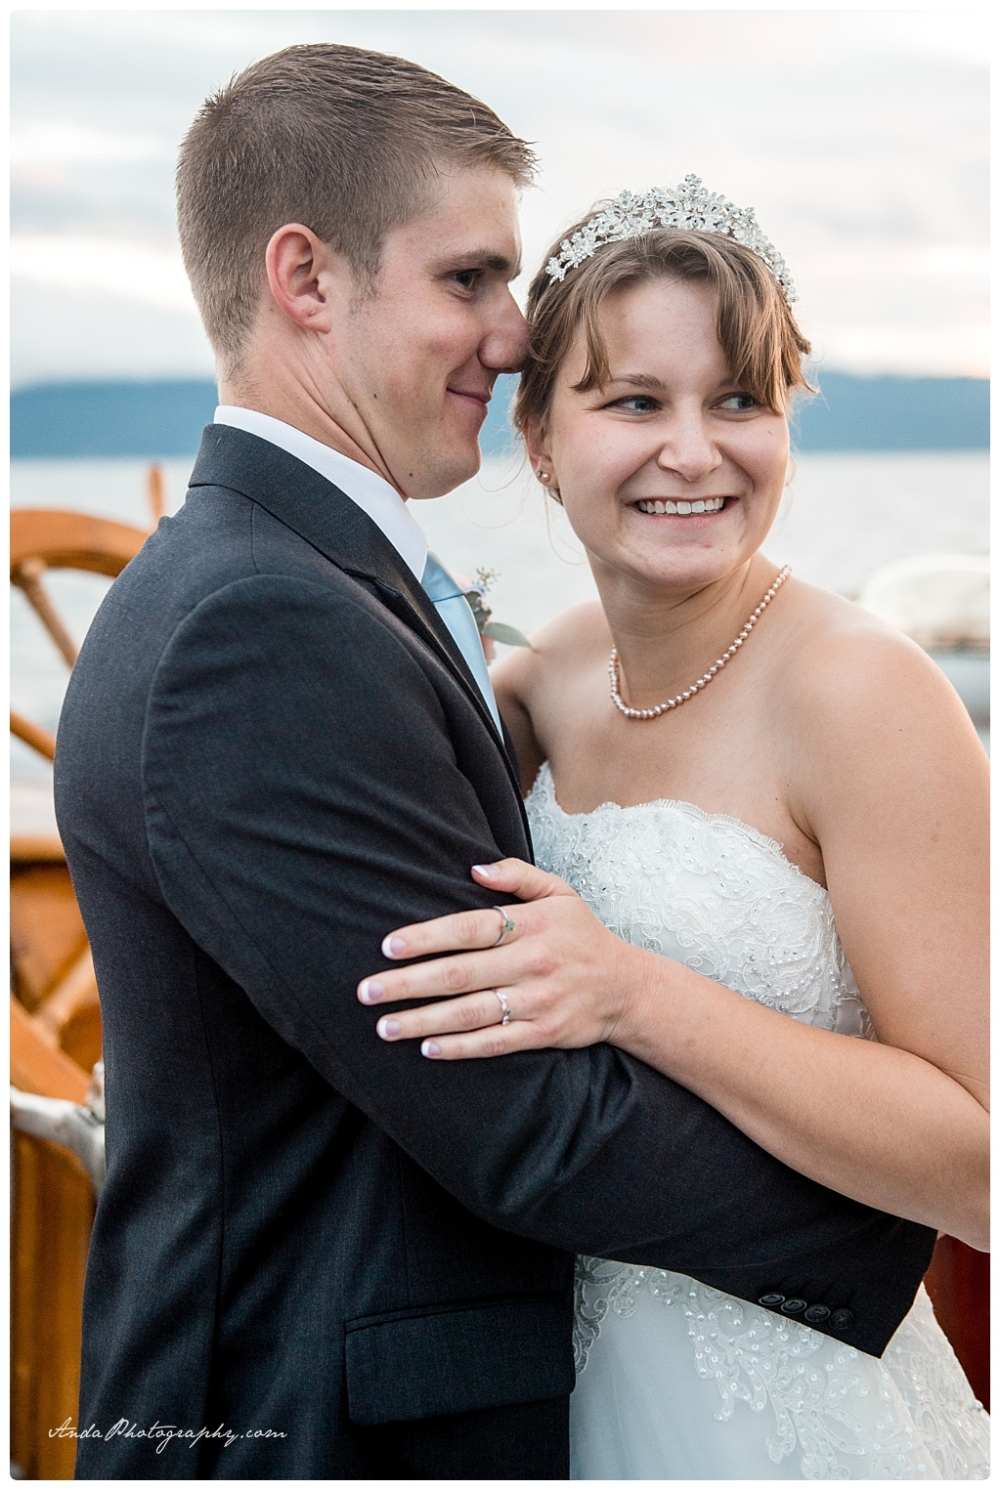 Anda Photography Bellingham wedding photographer seattle wedding photographer Schooner Zodiak Wedding photos_0050